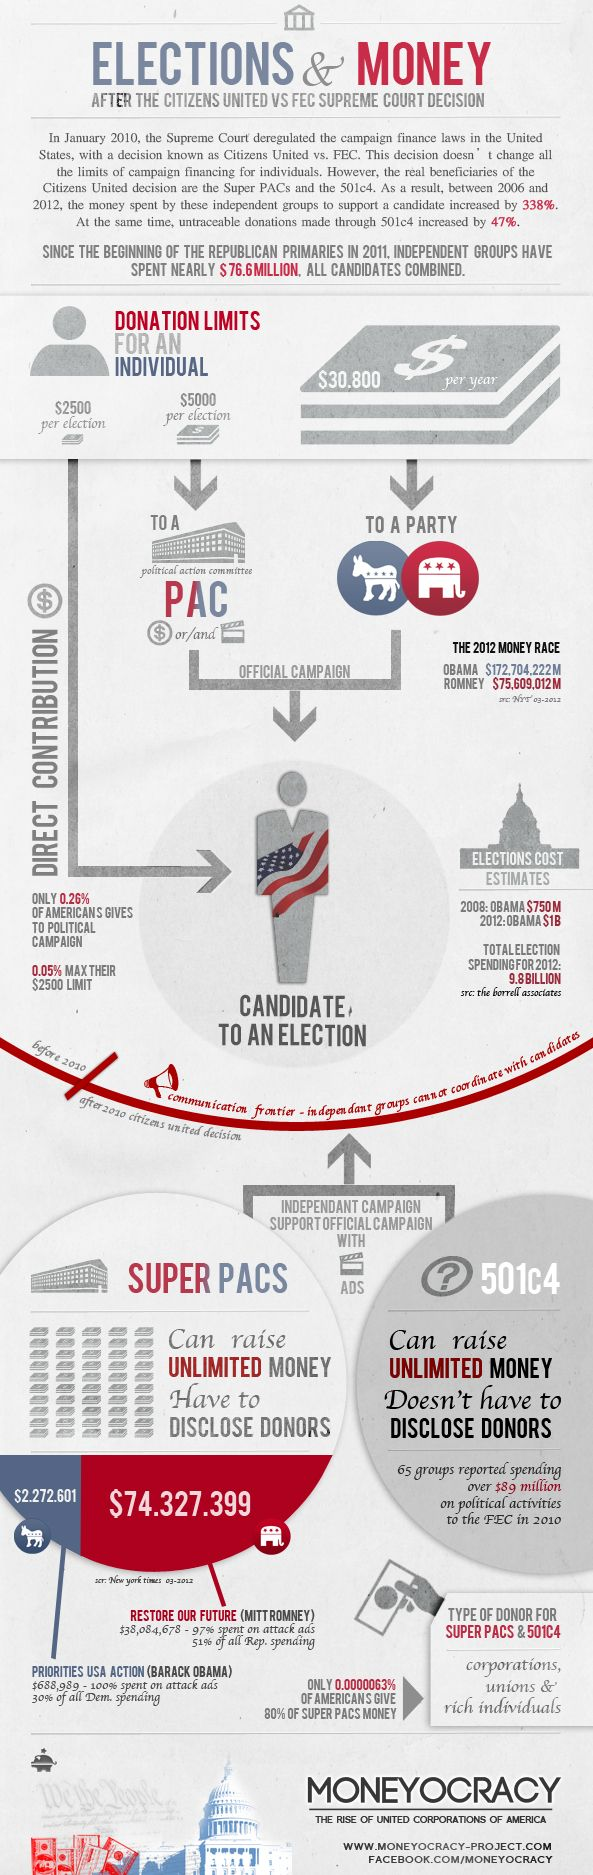 Elections and money shows what the campaign donations limits are during the 2012 Presidential race in the United States.